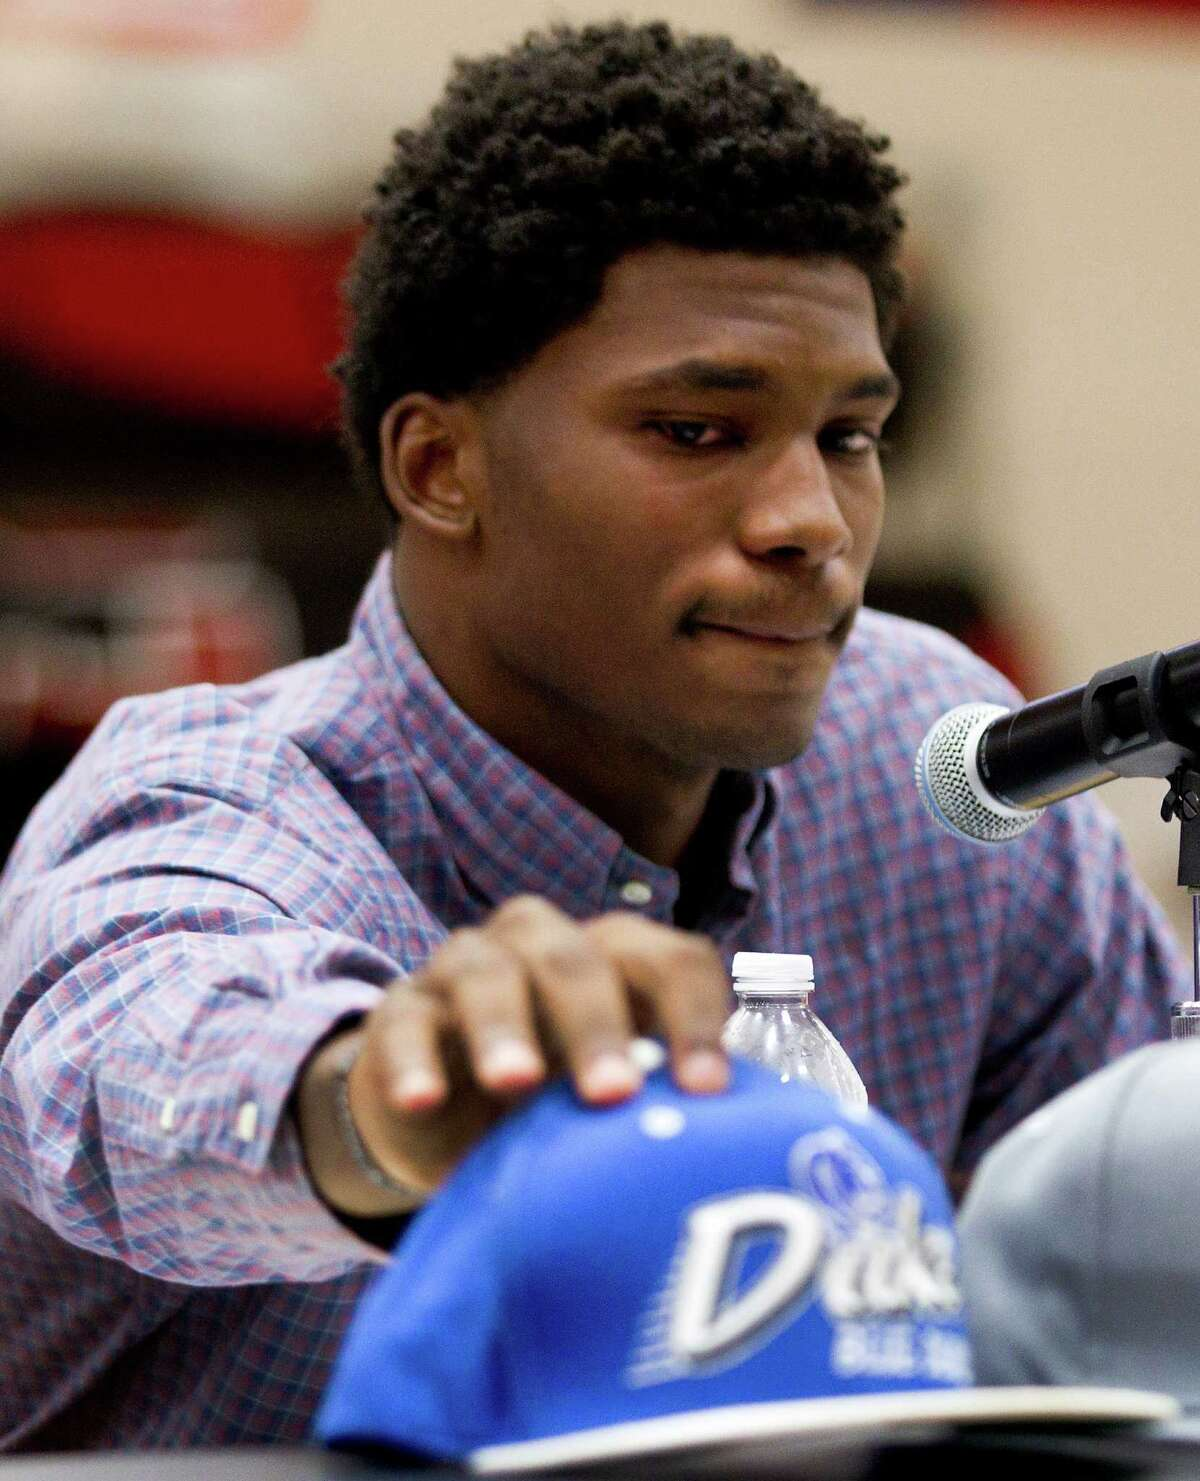 St. John's senior Justice Winslow reaches to pick up a Duke hat announces his decision to play basketball at the North Carolina school Thursday, Nov. 21, 2013, in Houston. ( Brett Coomer / Houston Chronicle )